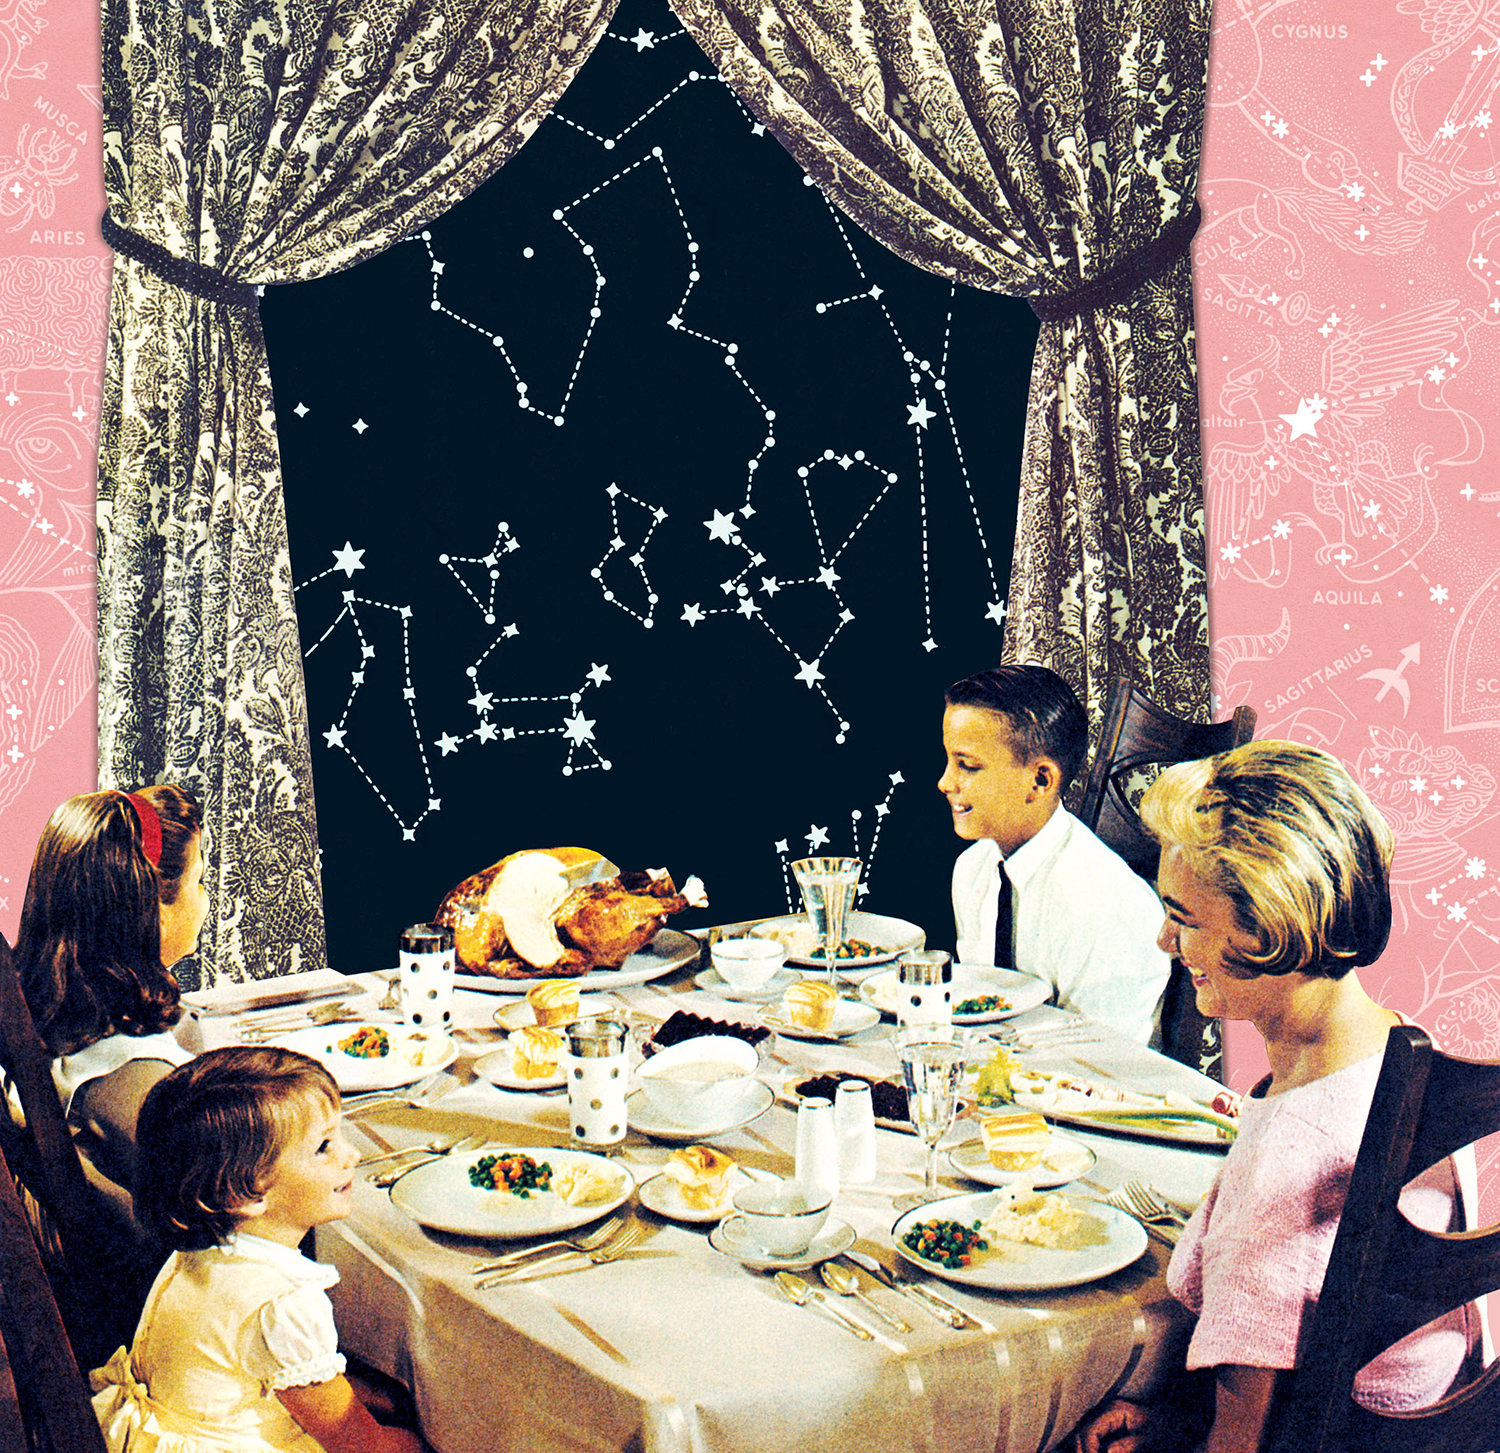 retro illustration of family at table with astrology